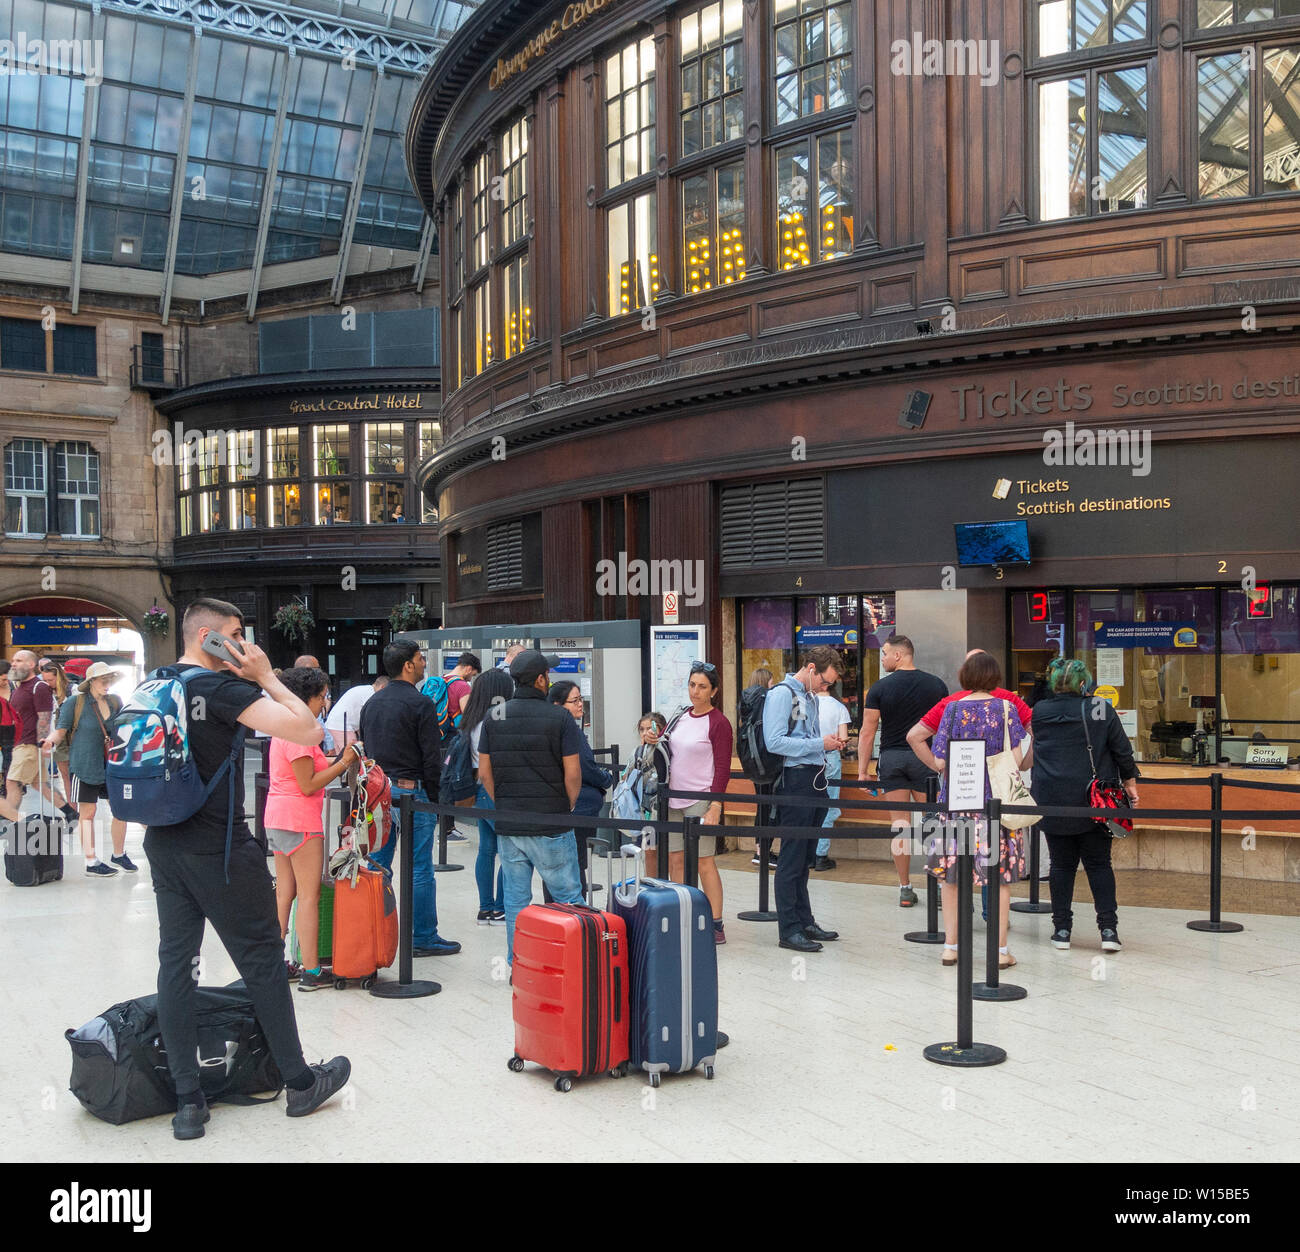 Passengers queuing in and standing around the ticket selling office in Glasgow Central Station, Scotland - Stock Image